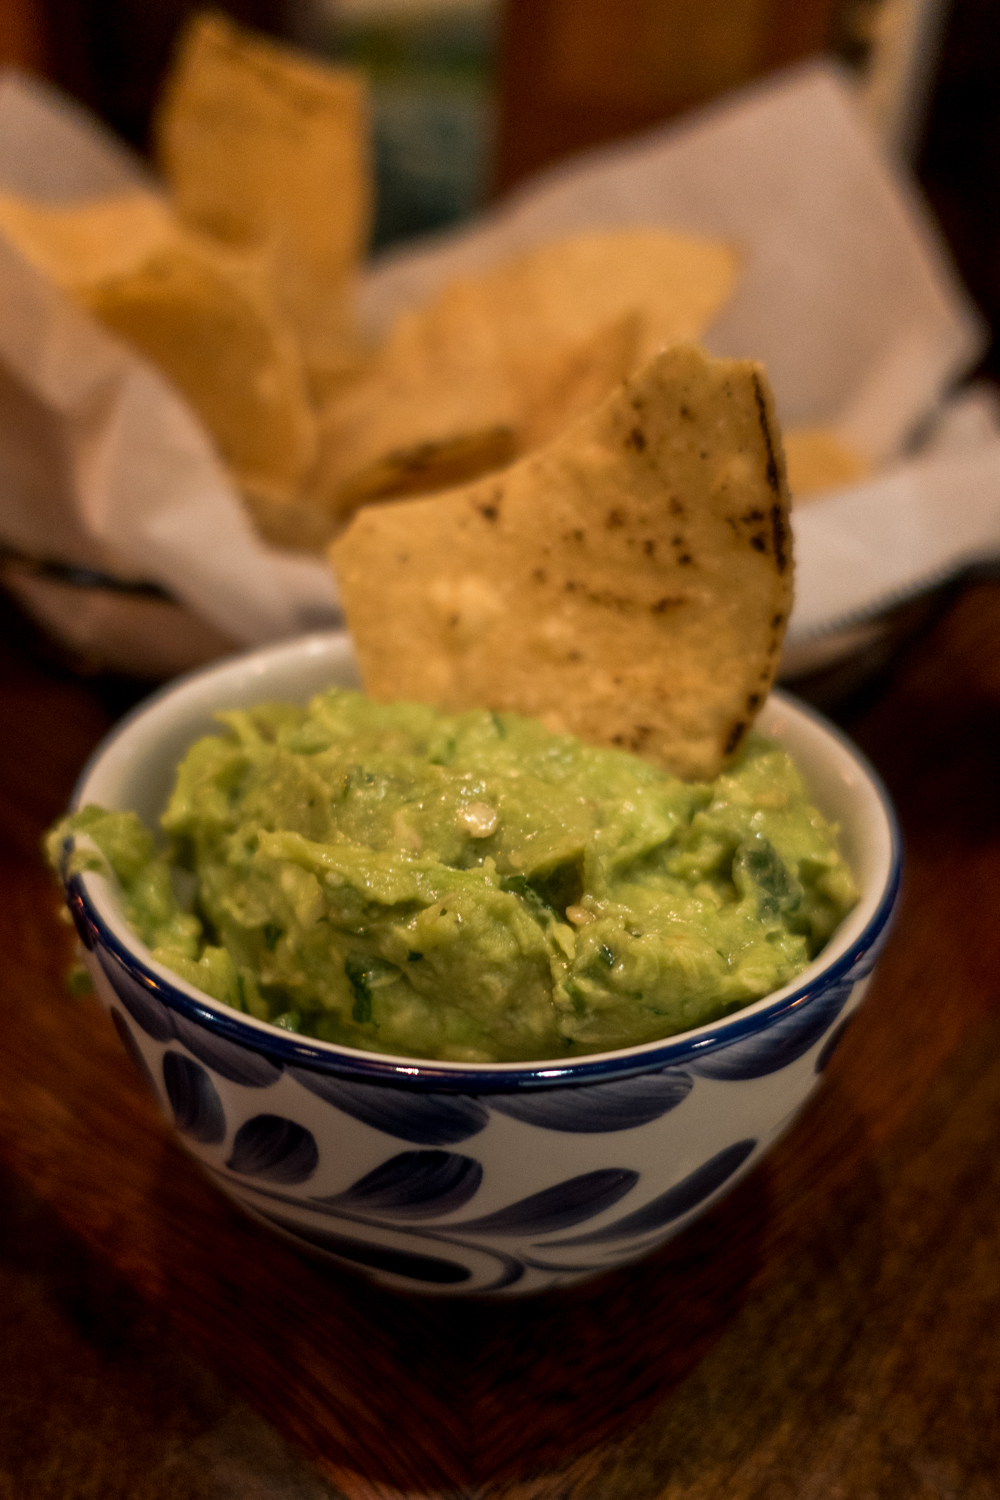 chips and guacamole at La Cava del Tequila located inside the Mexico Pavilion at Epcot. Their guacamole is delicious! #disneyworld